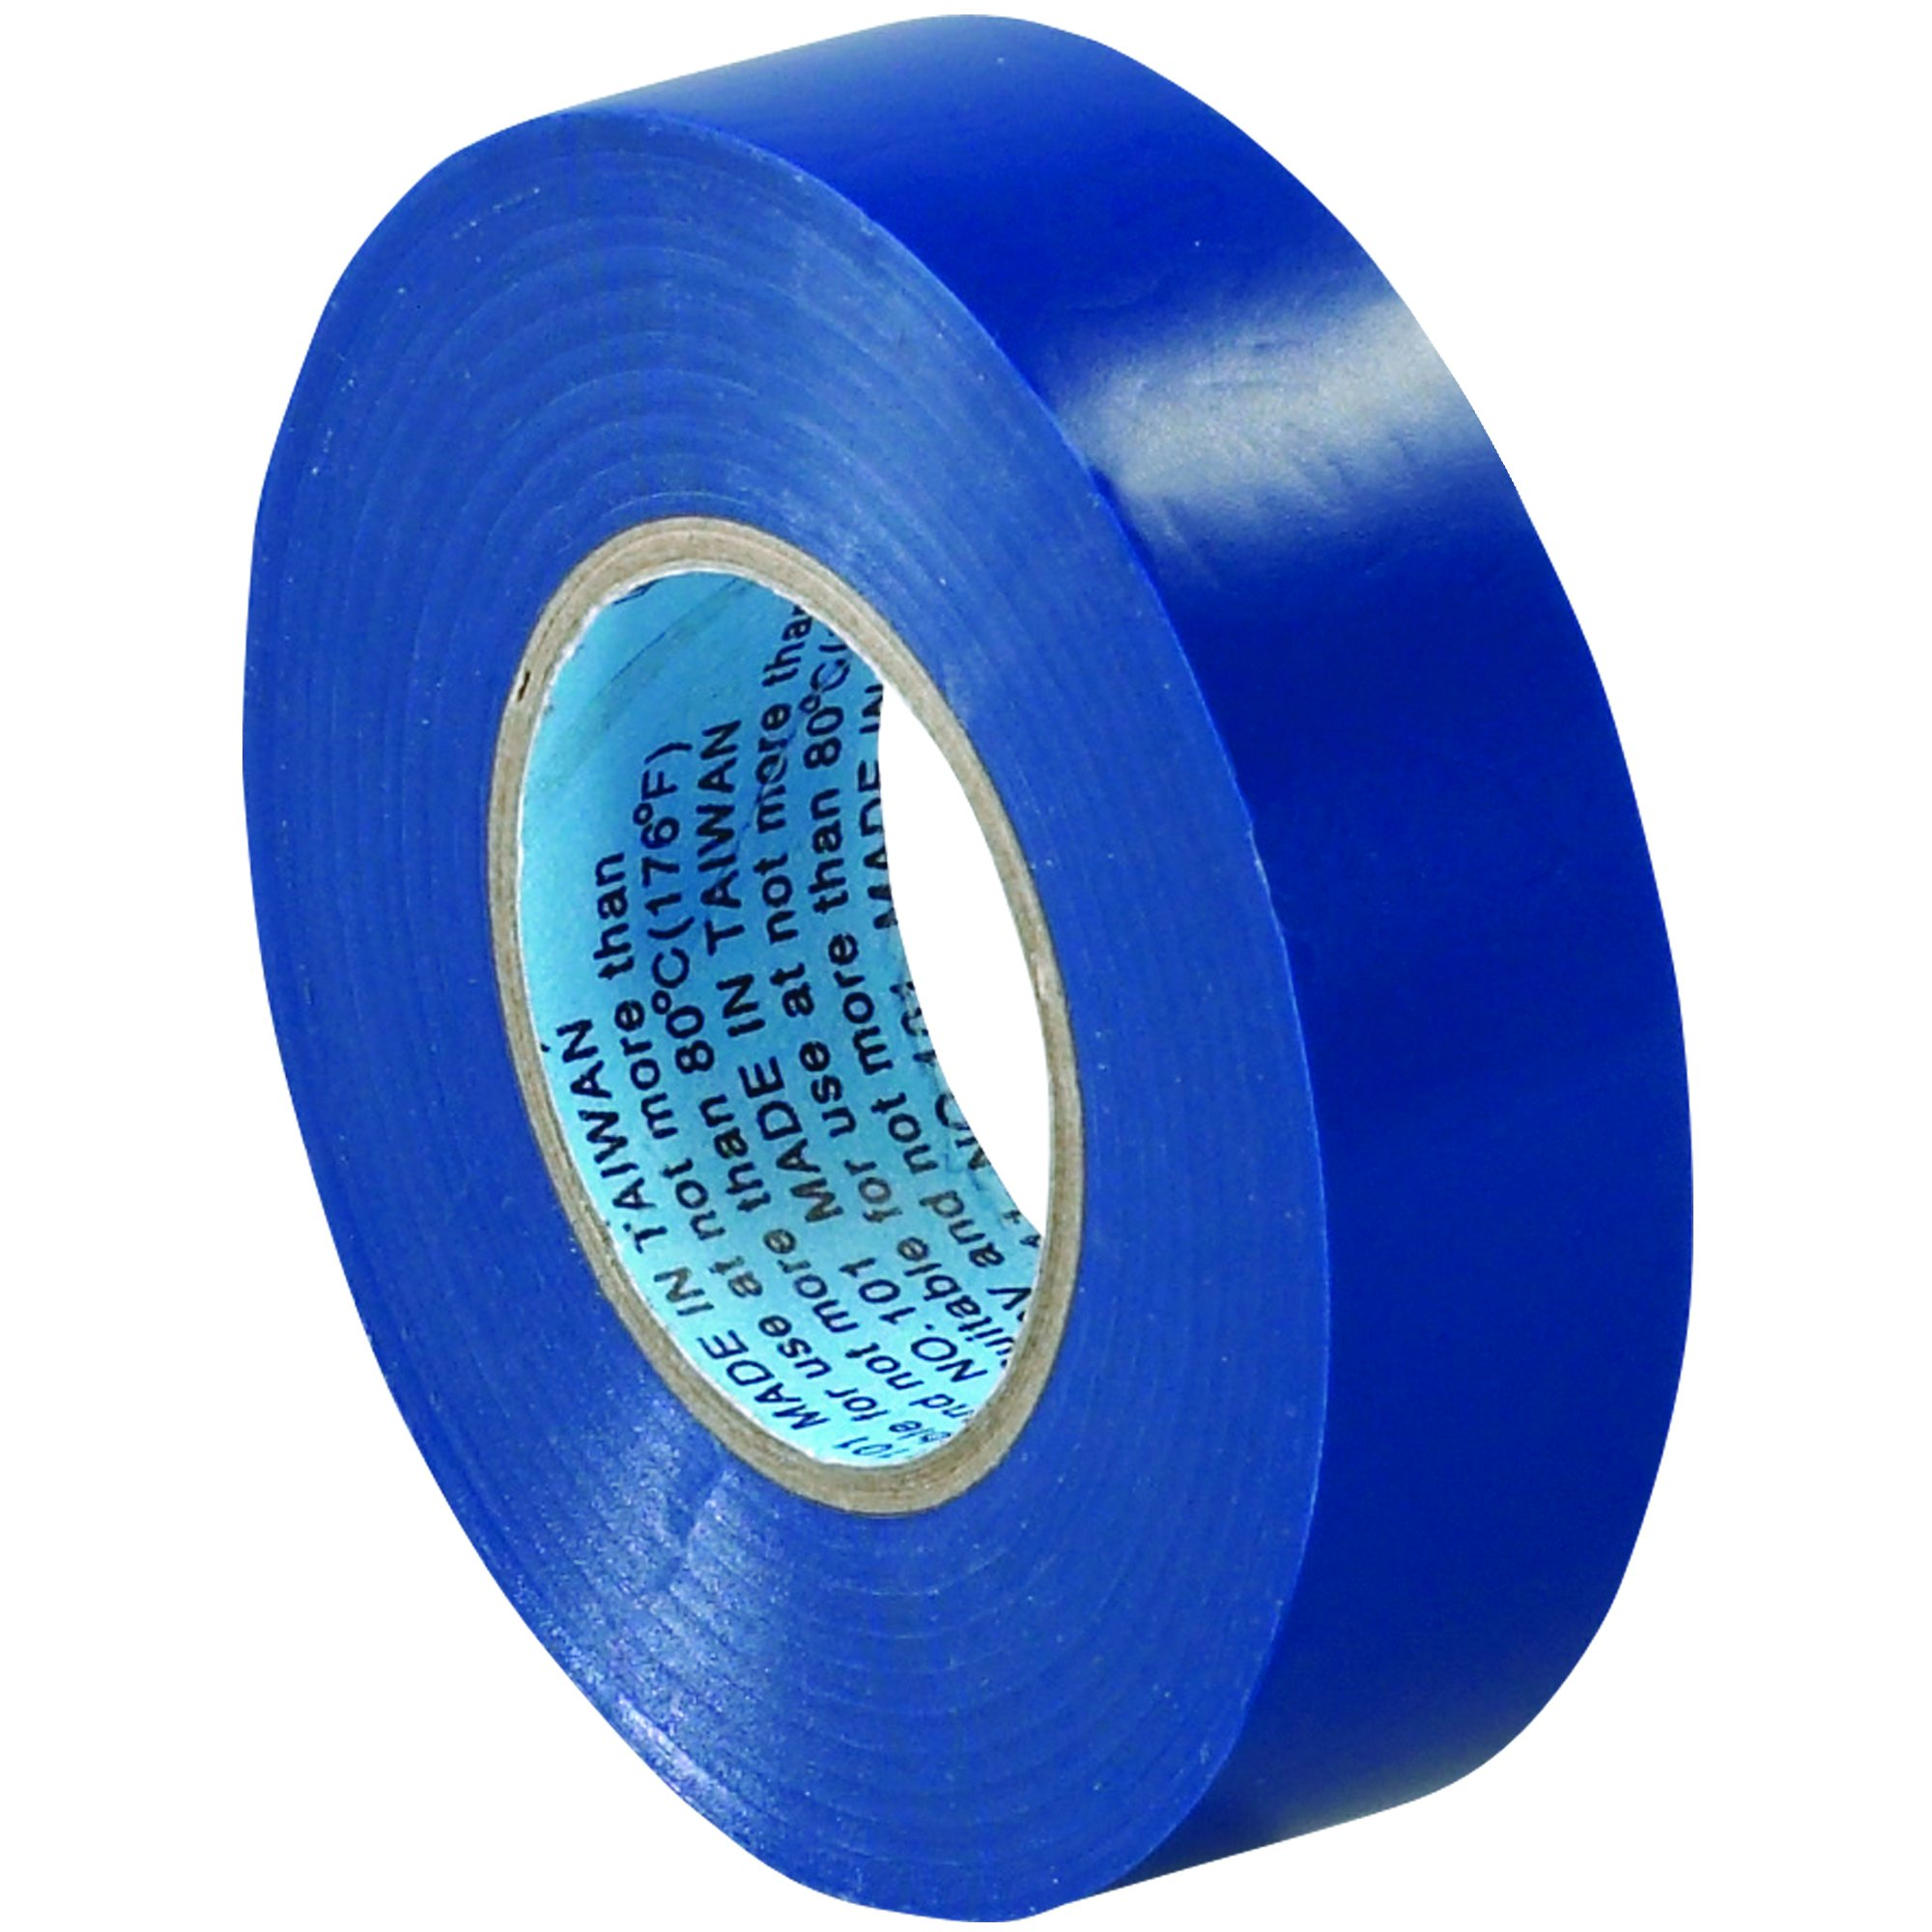 BOX BT96461810PKK Blue Electrical Tape, 20 yd. Length, 3/4'' (Pack of 10)